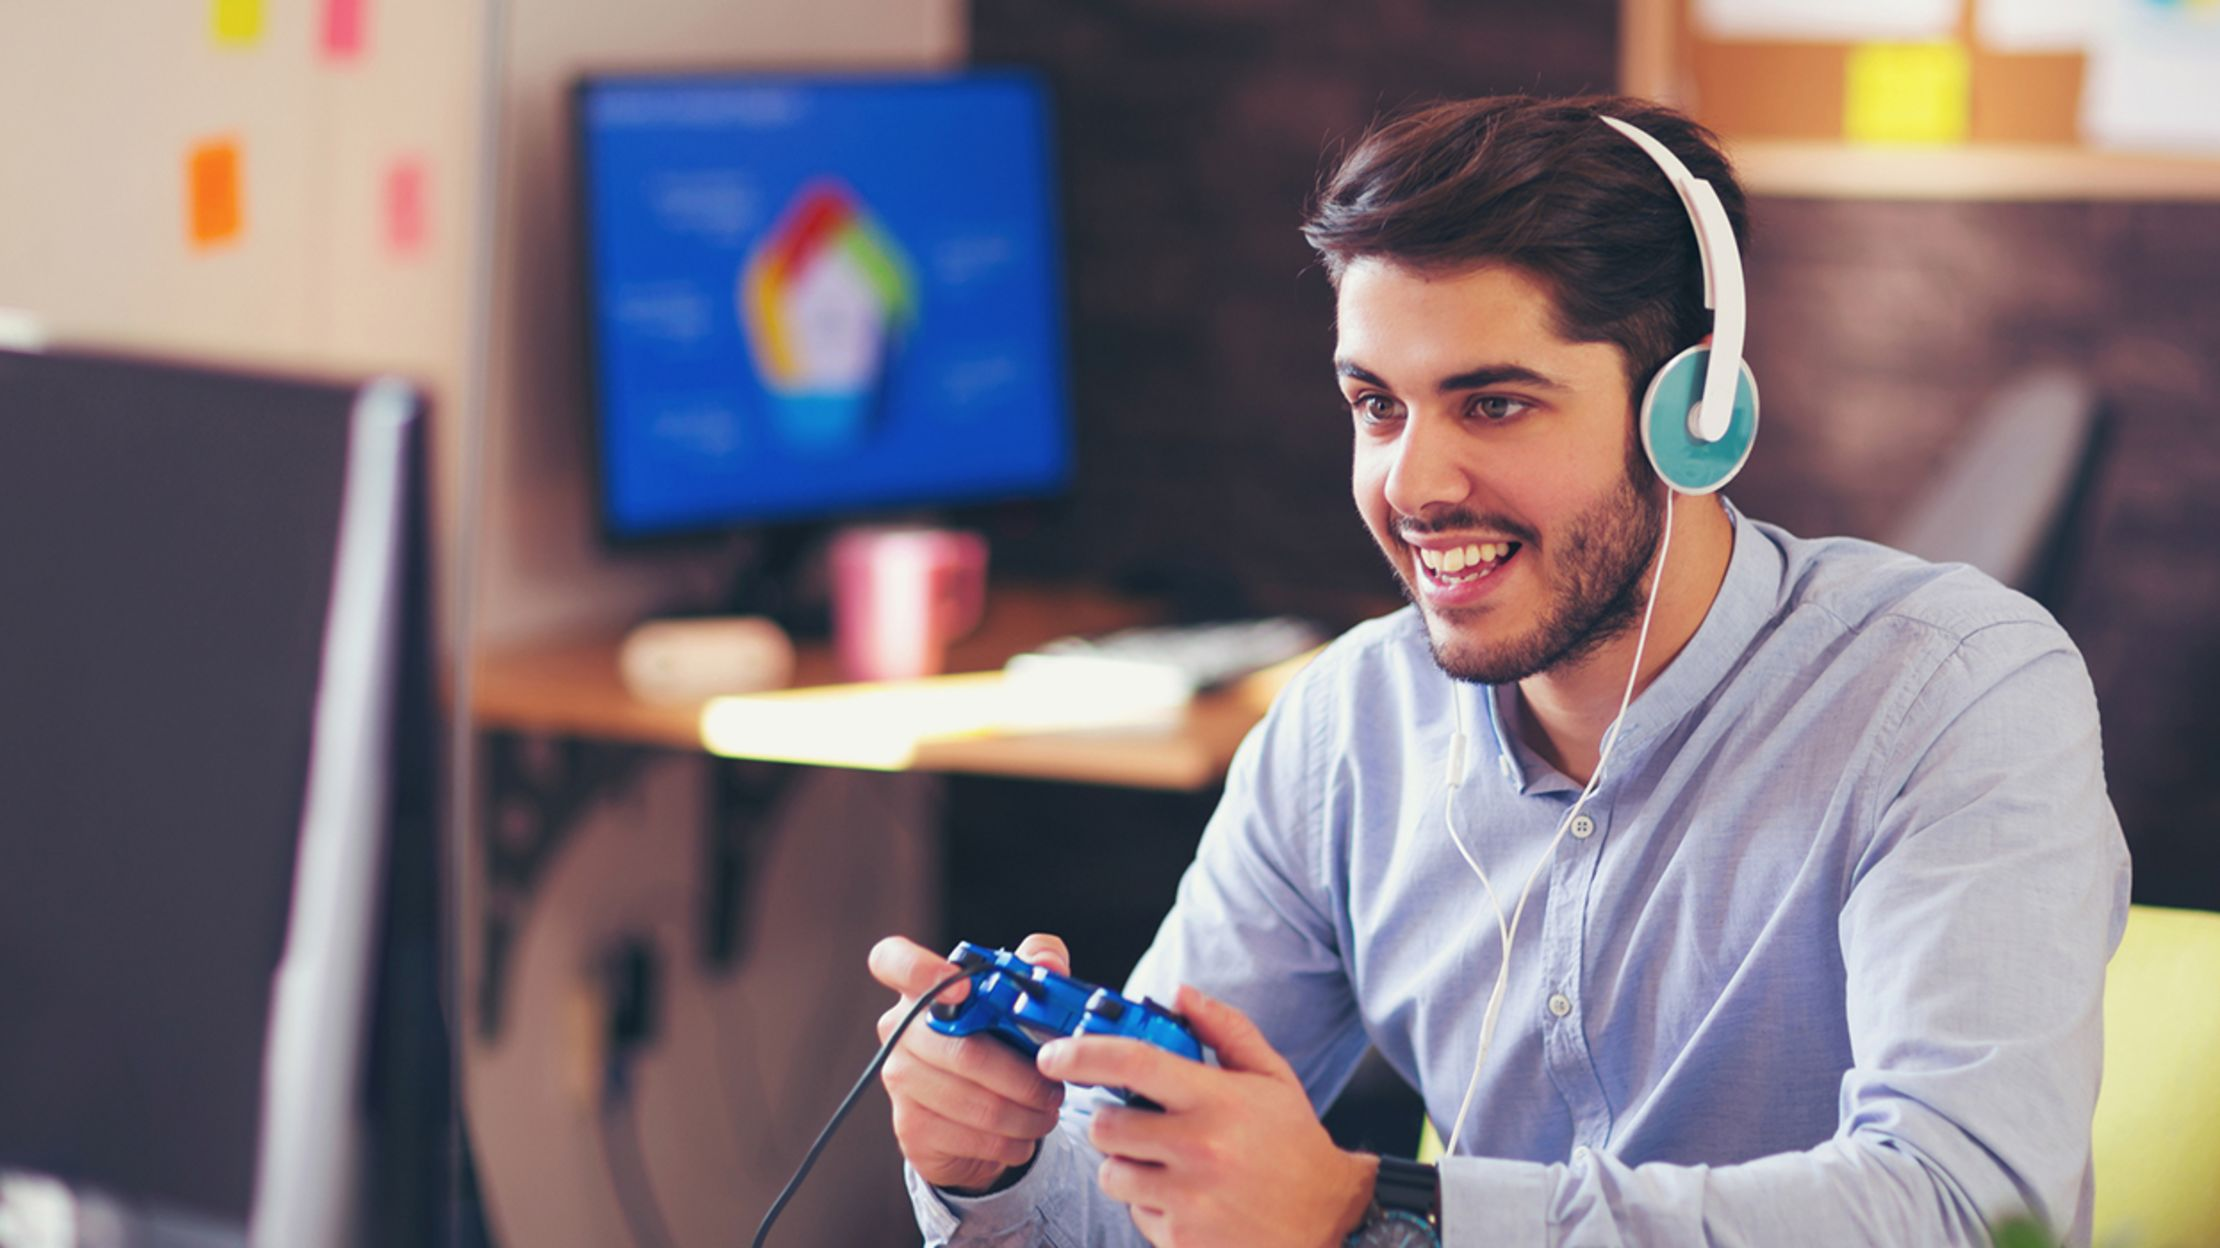 How To Get a Job as a Video Game Tester